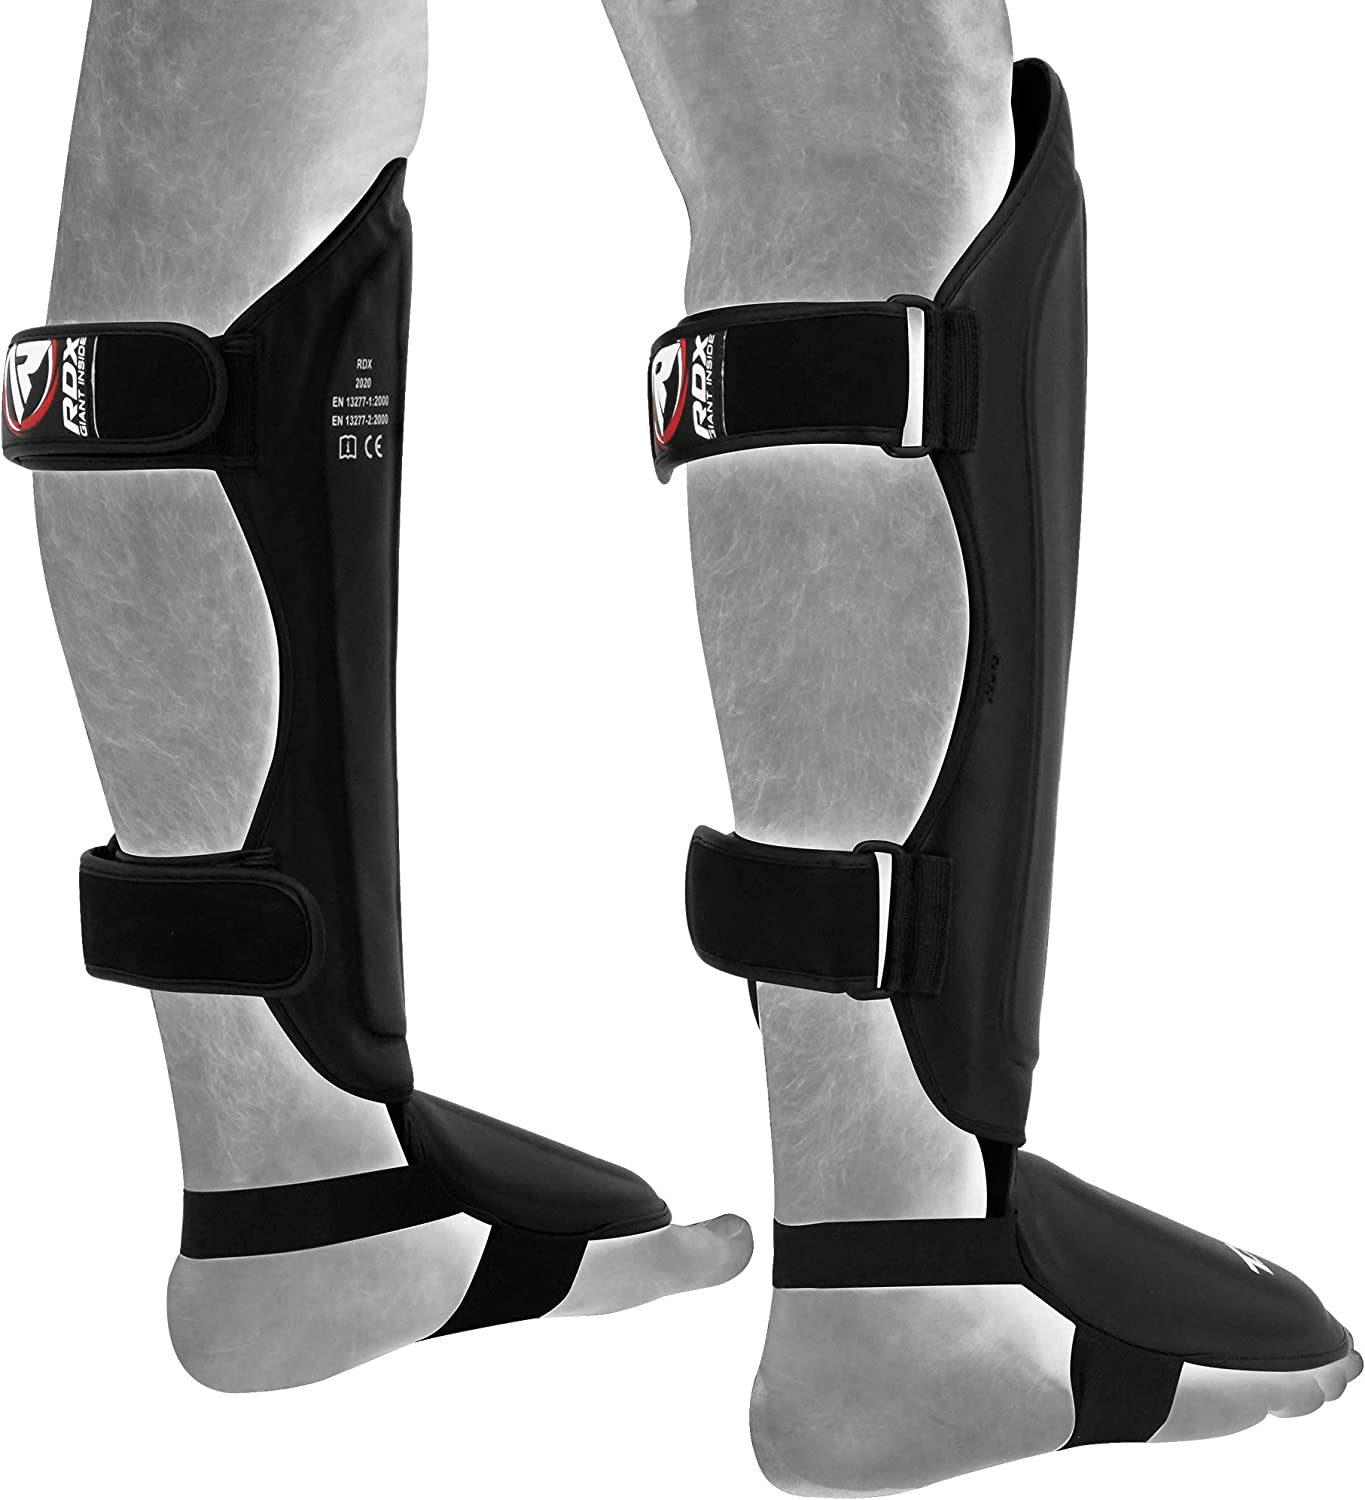 MMA Fighting and Training Pads Sparring,Boxing Training Shin Guards Muay Thai Maya Hide Leather Instep Leg Protector Foam Gear for Martial Arts Approved by SATRA and SMMAF Shinguards for Kickboxing